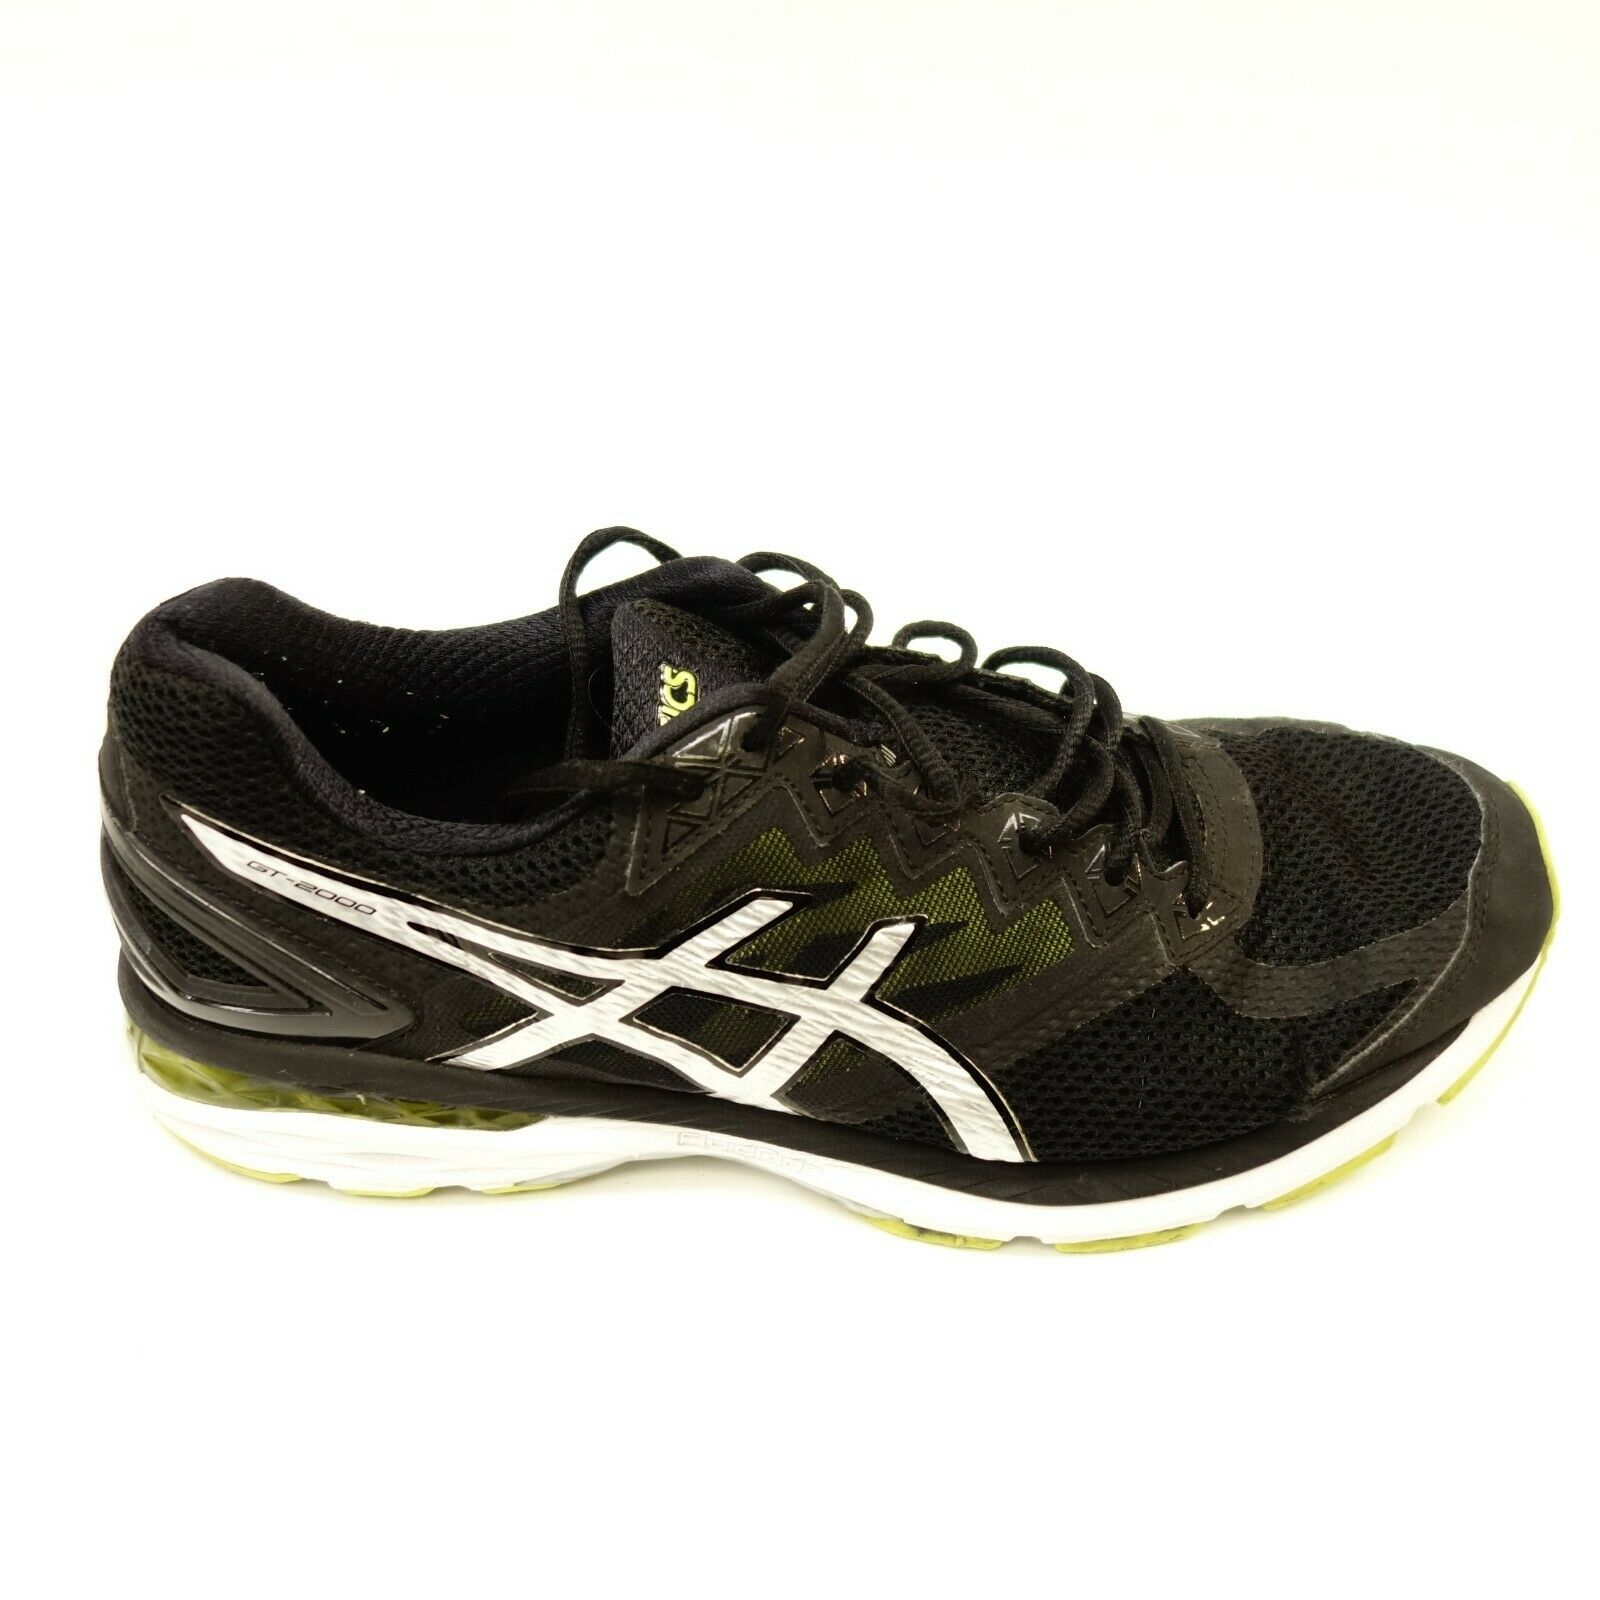 Asics Mens Sz 10 GT  -2000 3 T505N nero Athletic Running Cross Training scarpe  con il 60% di sconto